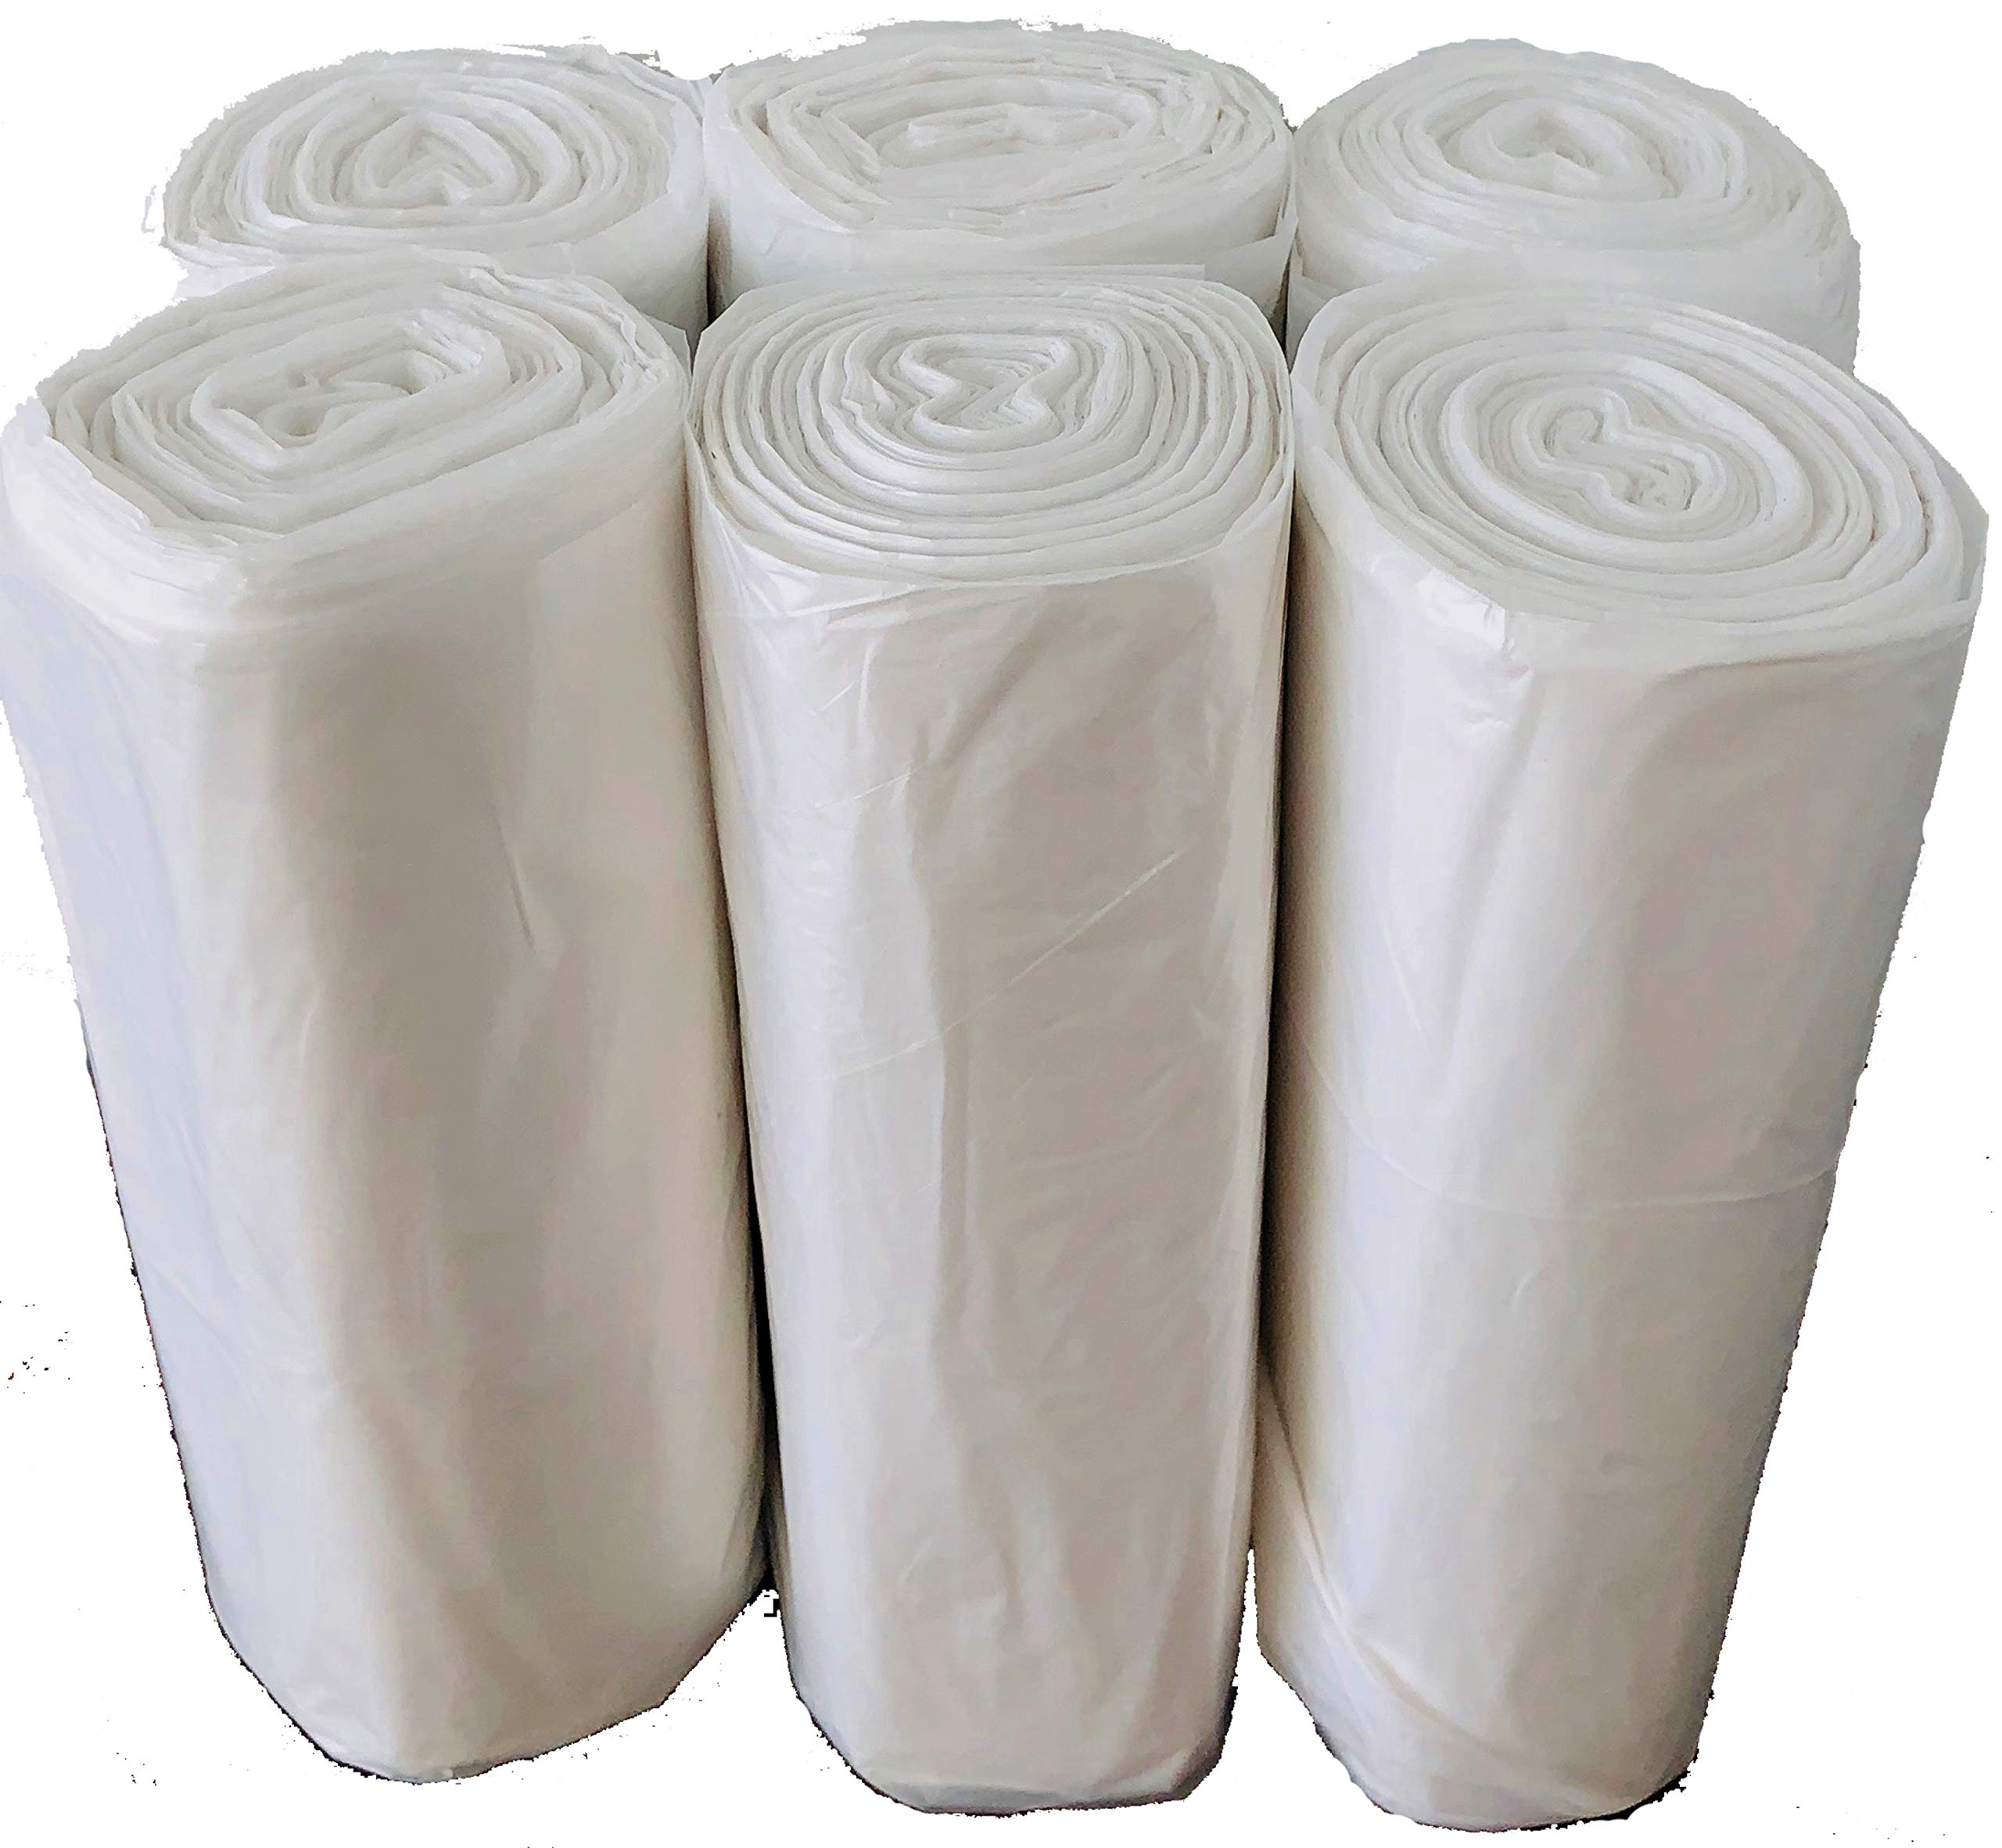 Reli. Easy Grab Trash Bags, 55-60 Gallon (150 Count) (Clear) - Star Seal Super High Density Rolls - Heavy Duty Can Liners, Garbage Bags, Bulk Bags - 50, 55, 60 Gallon Capacity by Reli. (Image #4)